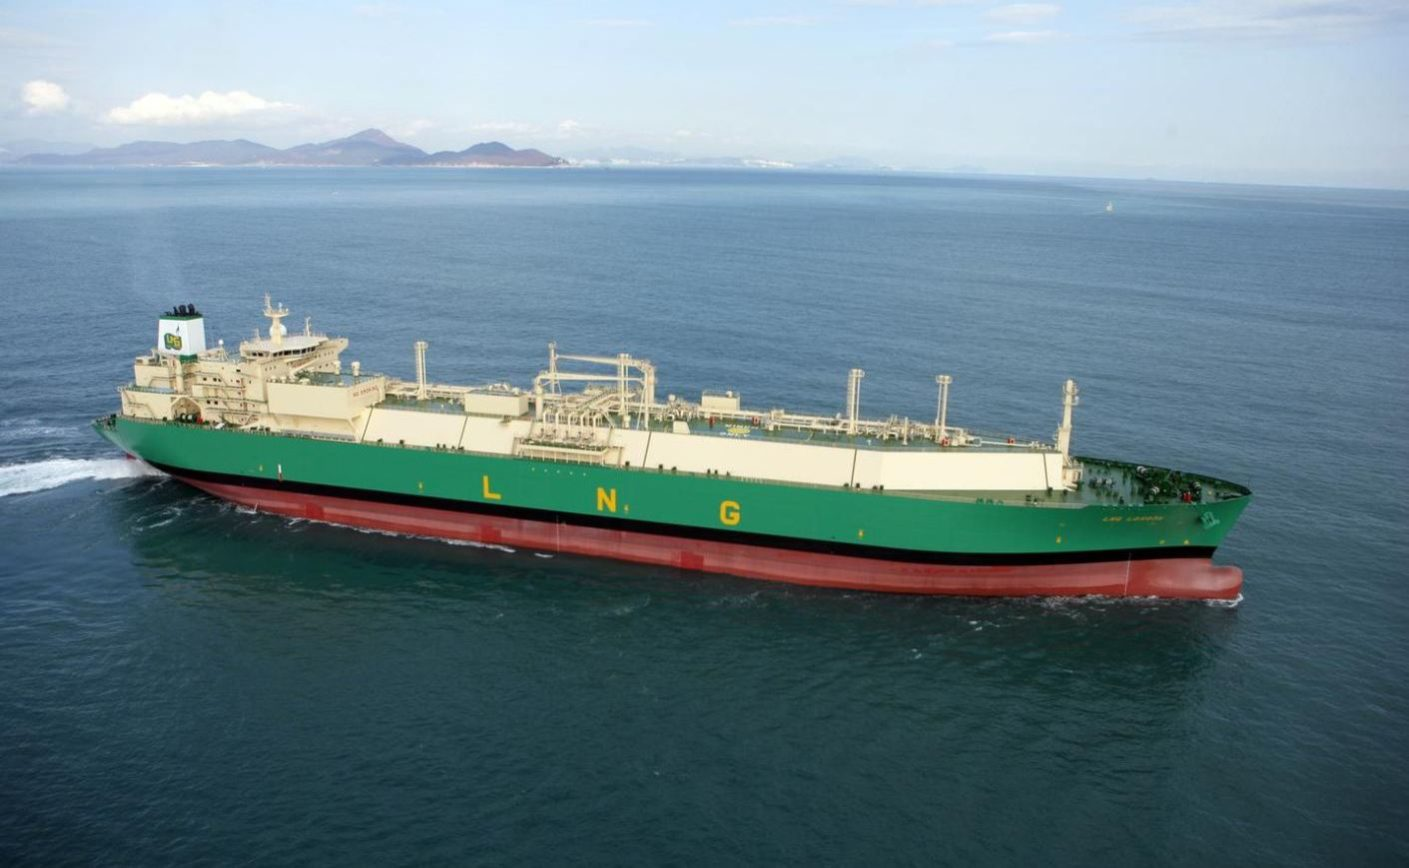 NLNG plans on Train-7 project to push Nigeria to become 3rd